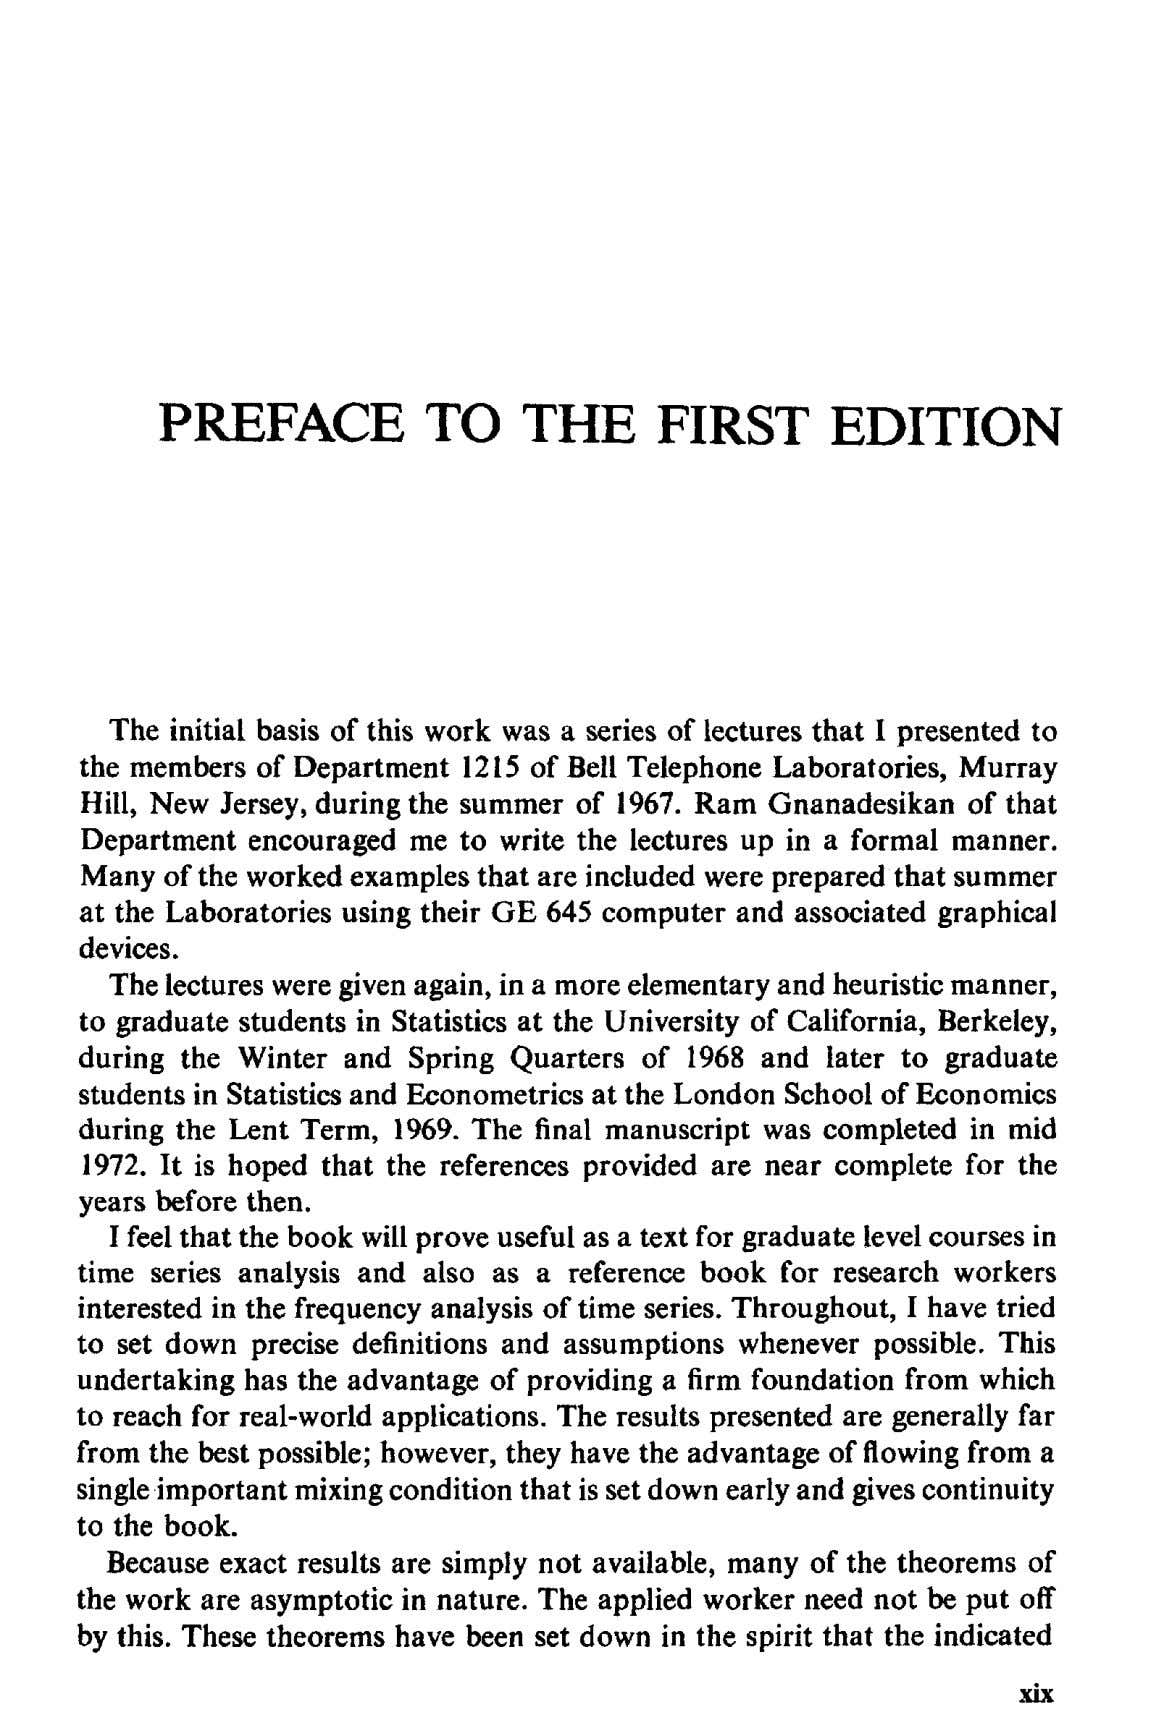 PREFACE TO THE FIRST EDITION The initial basis of this work was a series of